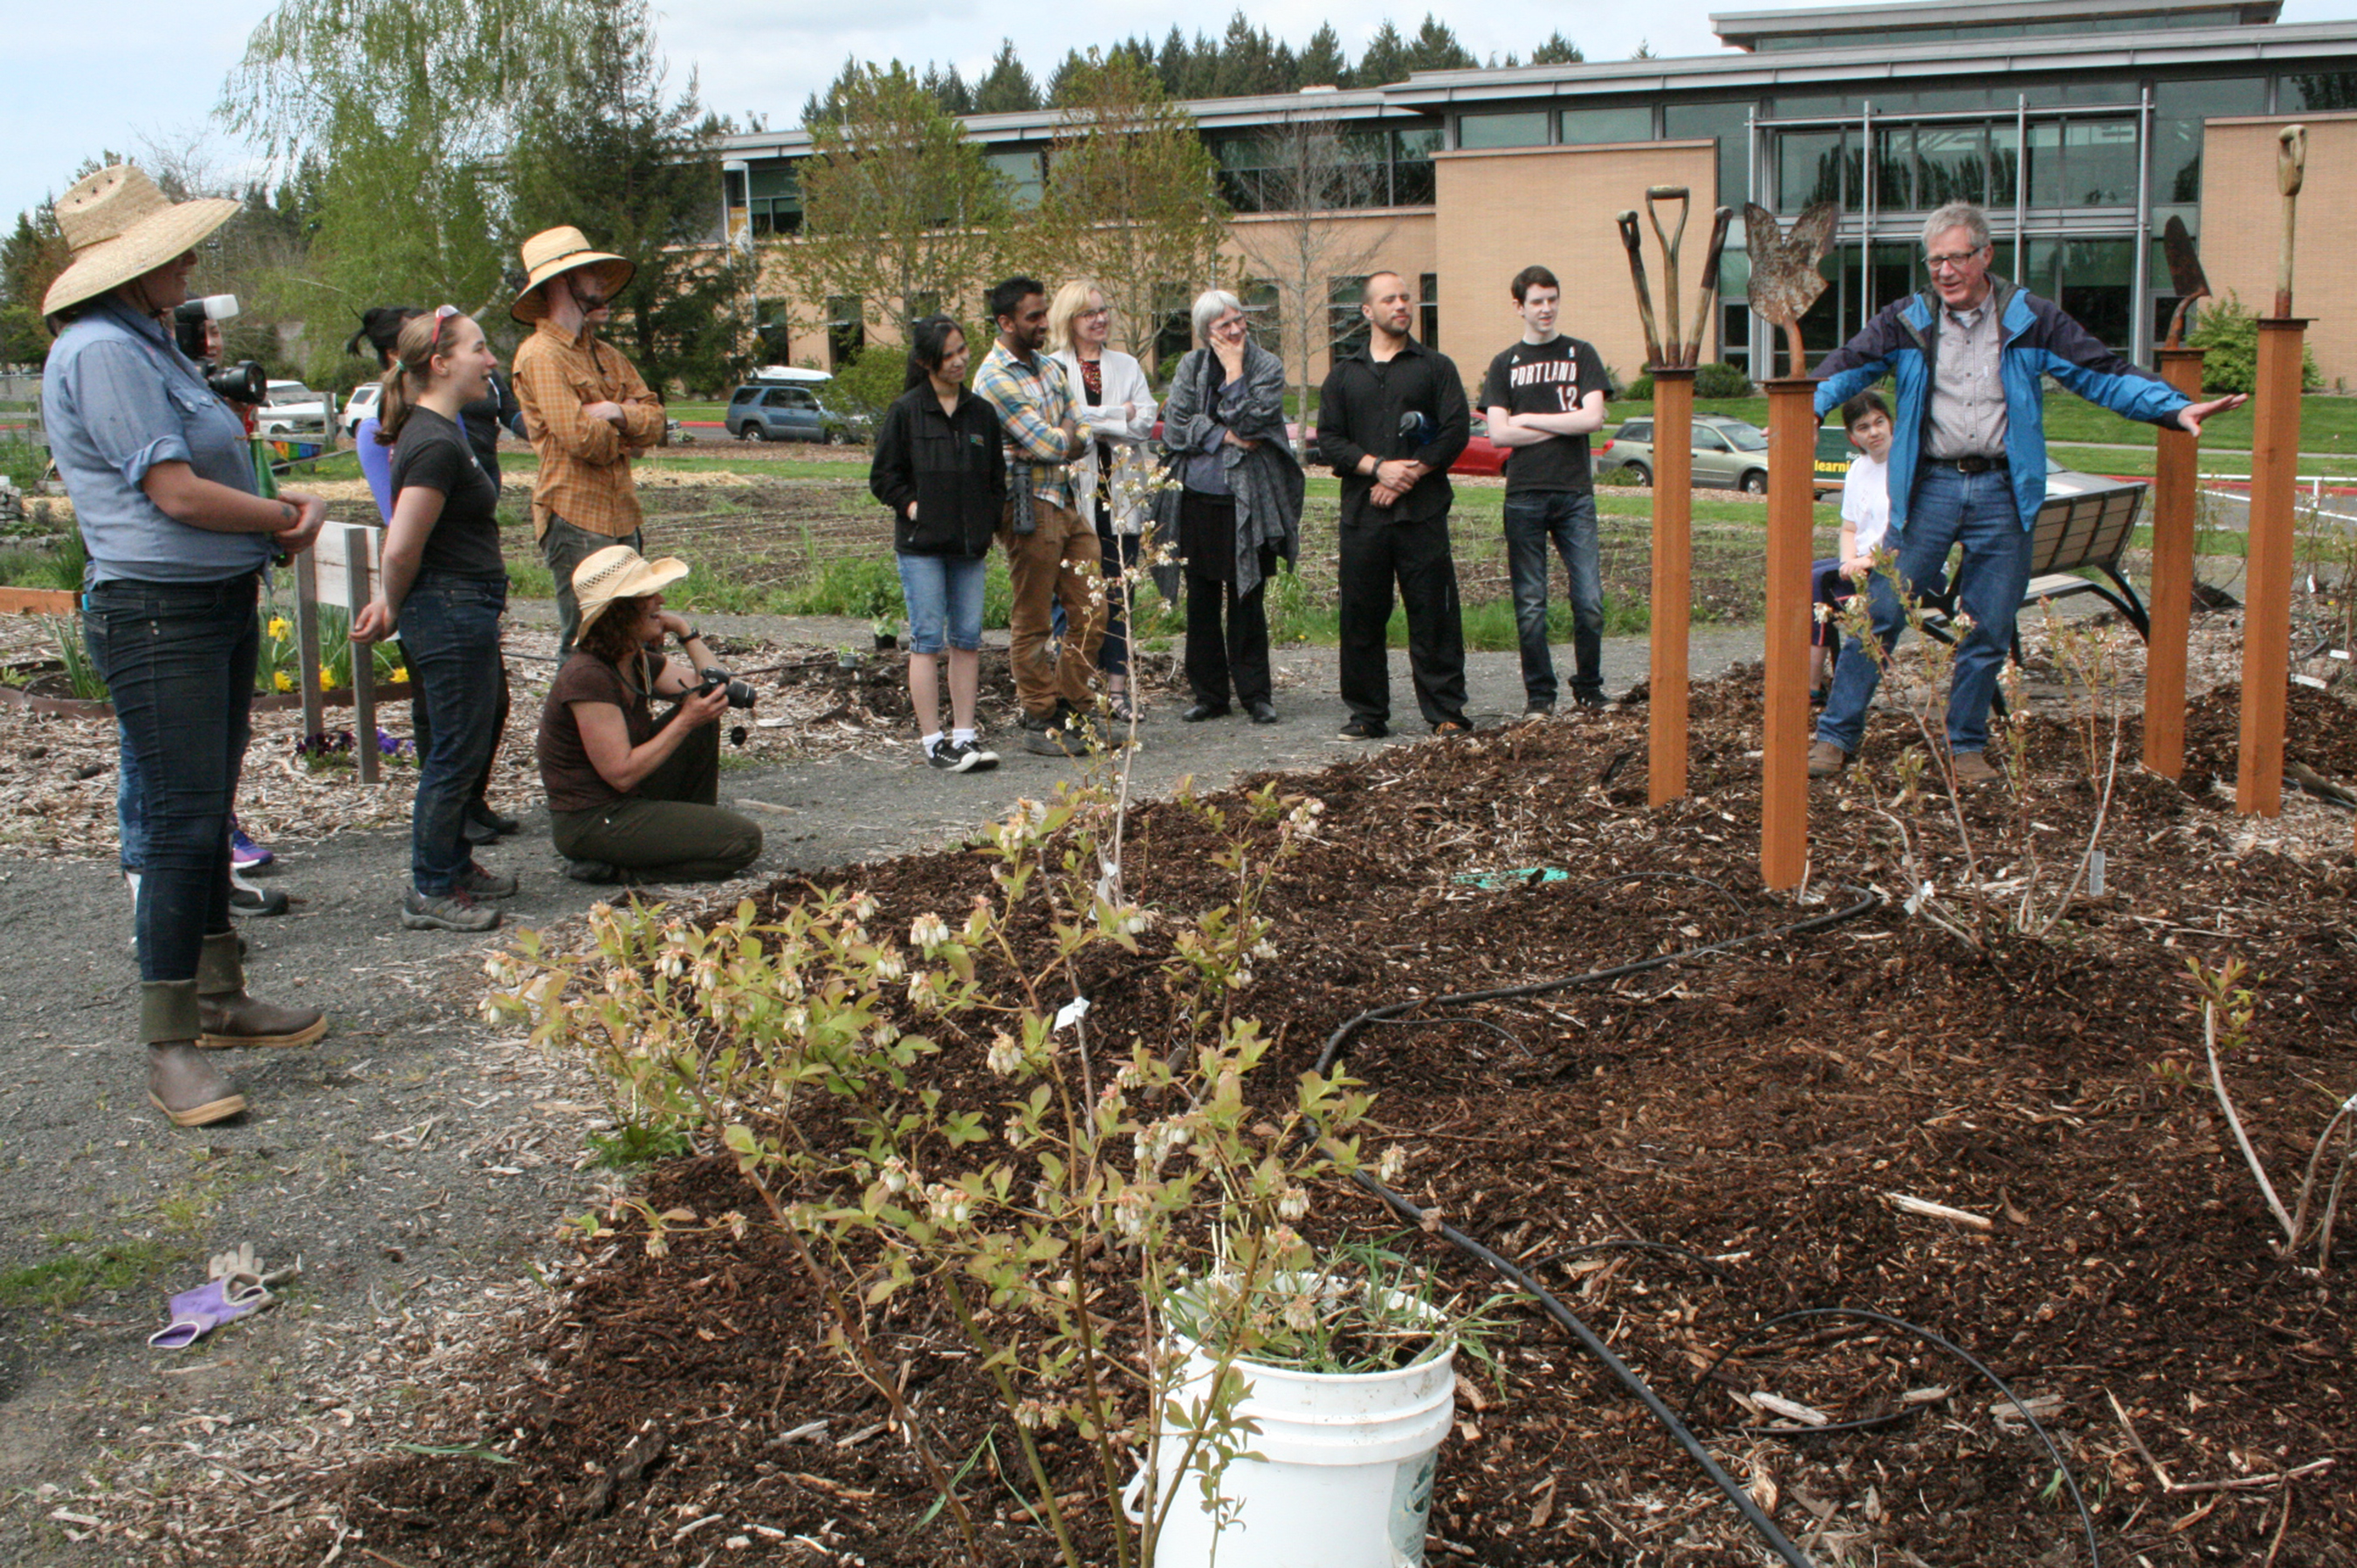 Garden produces much learning | News at PCC